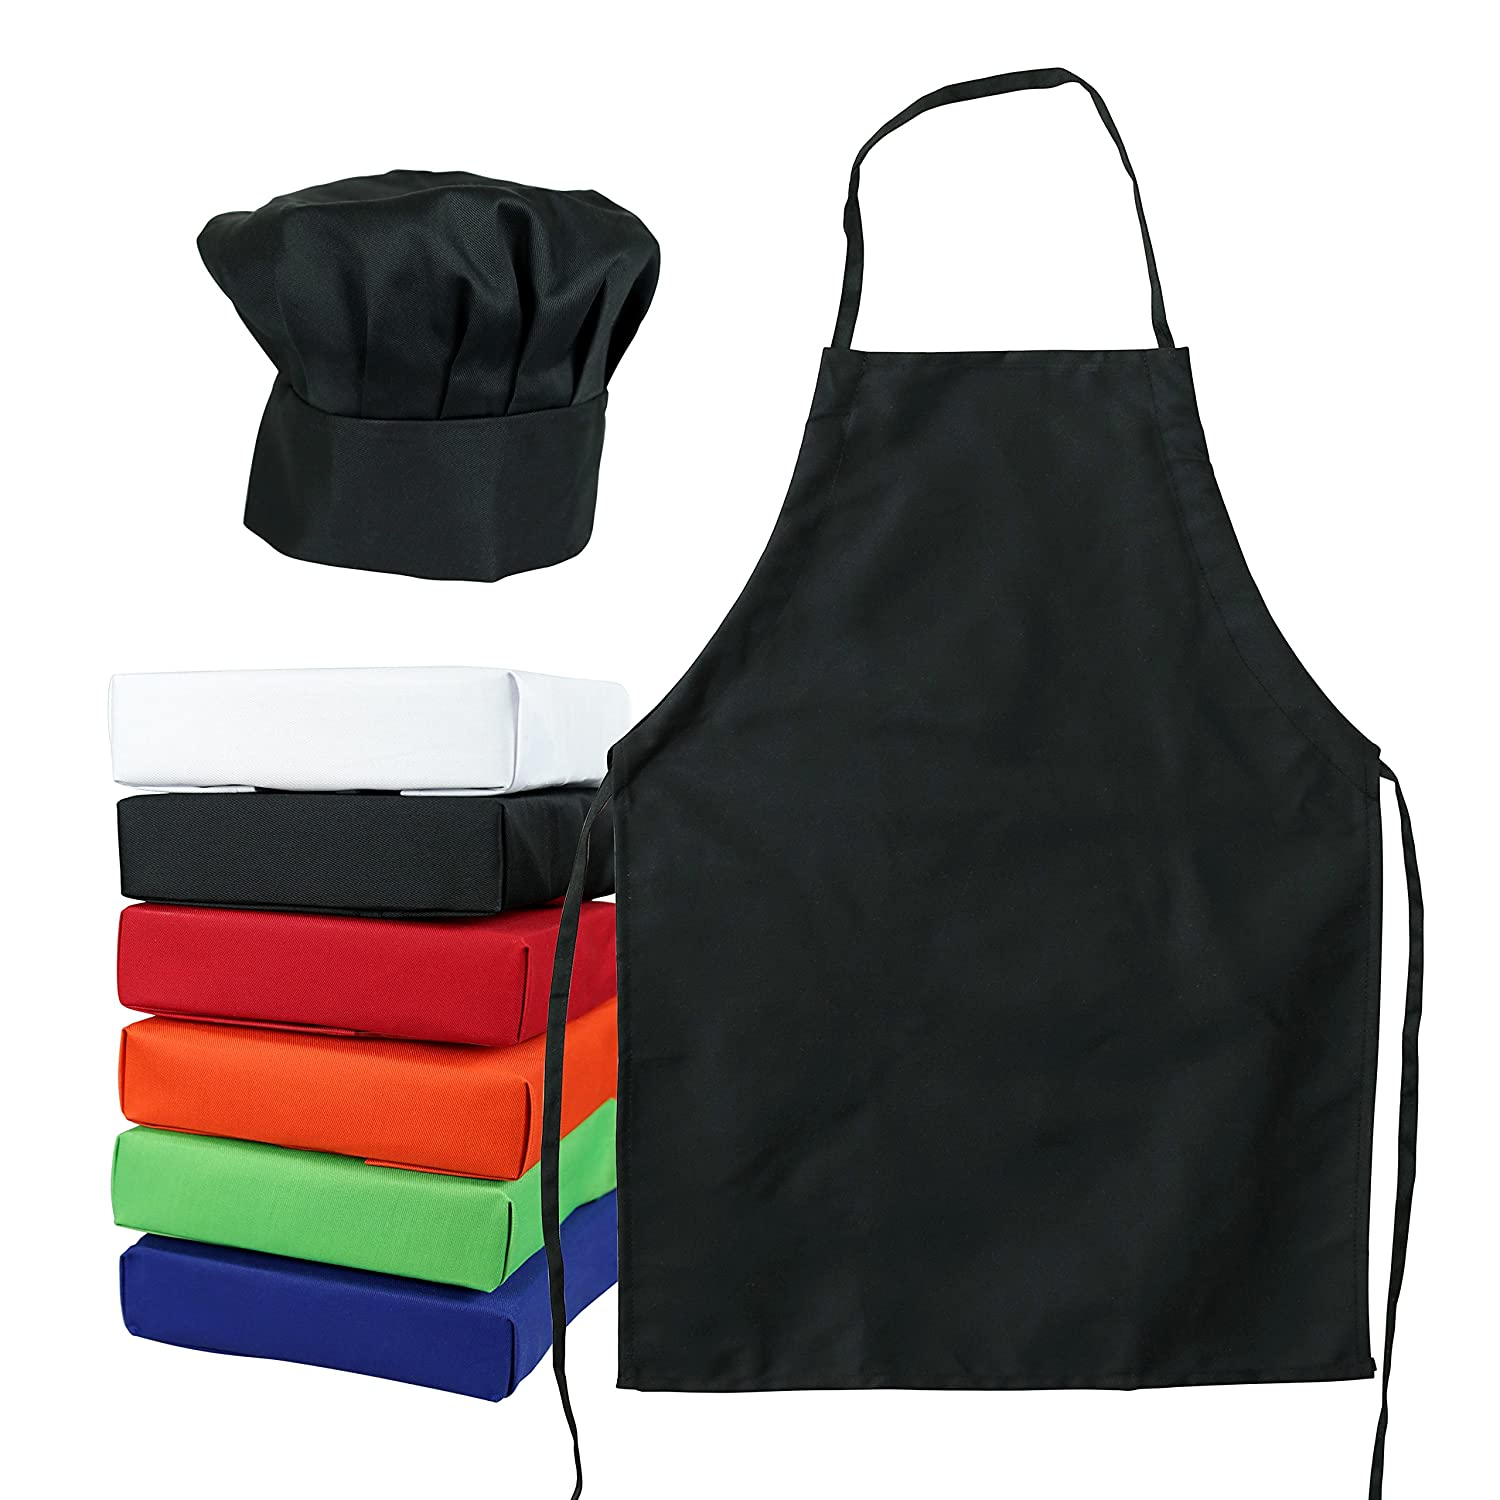 Odelia ObviousChef Kids -Baby Chef Hat Apron Set, Baby Size, children's Kitchen Cooking and Baking Wear Kit For Those Chefs In Training, Size (XS 1-2 Year, White)